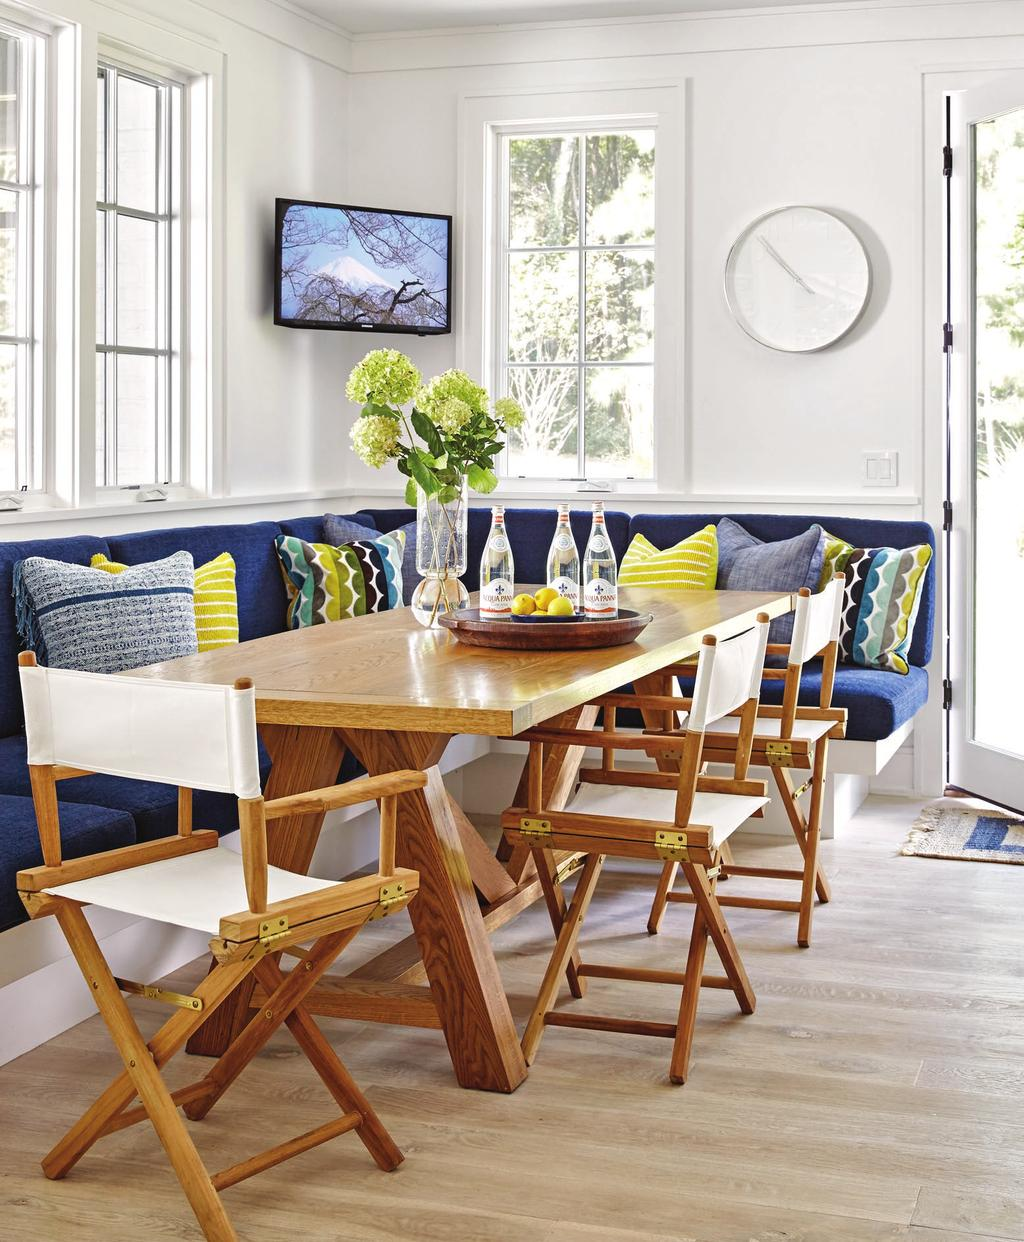 The banquette cushions wear soft but durable chenille; pillows in outdoor fabrics punch up the navy with citrusy hues.